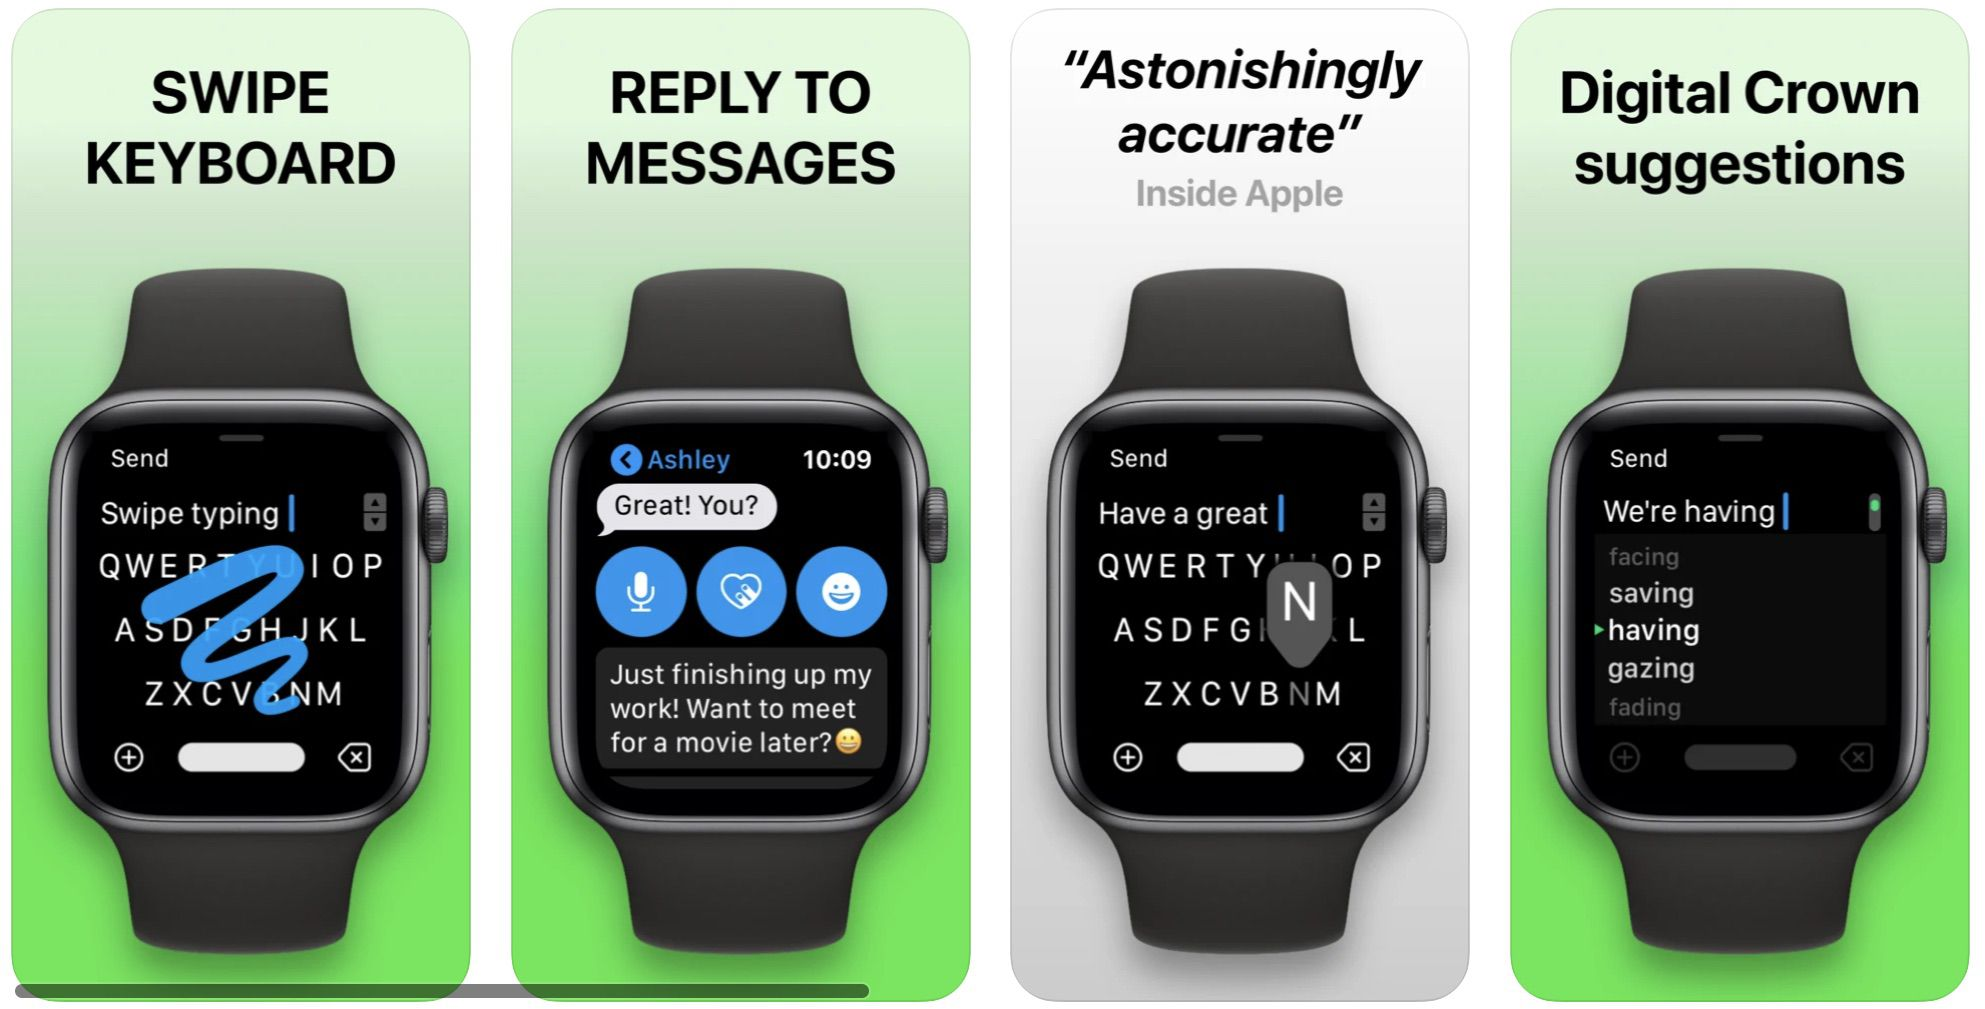 FlickType founder Kosta Eleftheriou, who has been vocal about scam apps on several occasions, today announced that his app FlickType Watch Keyboard wi